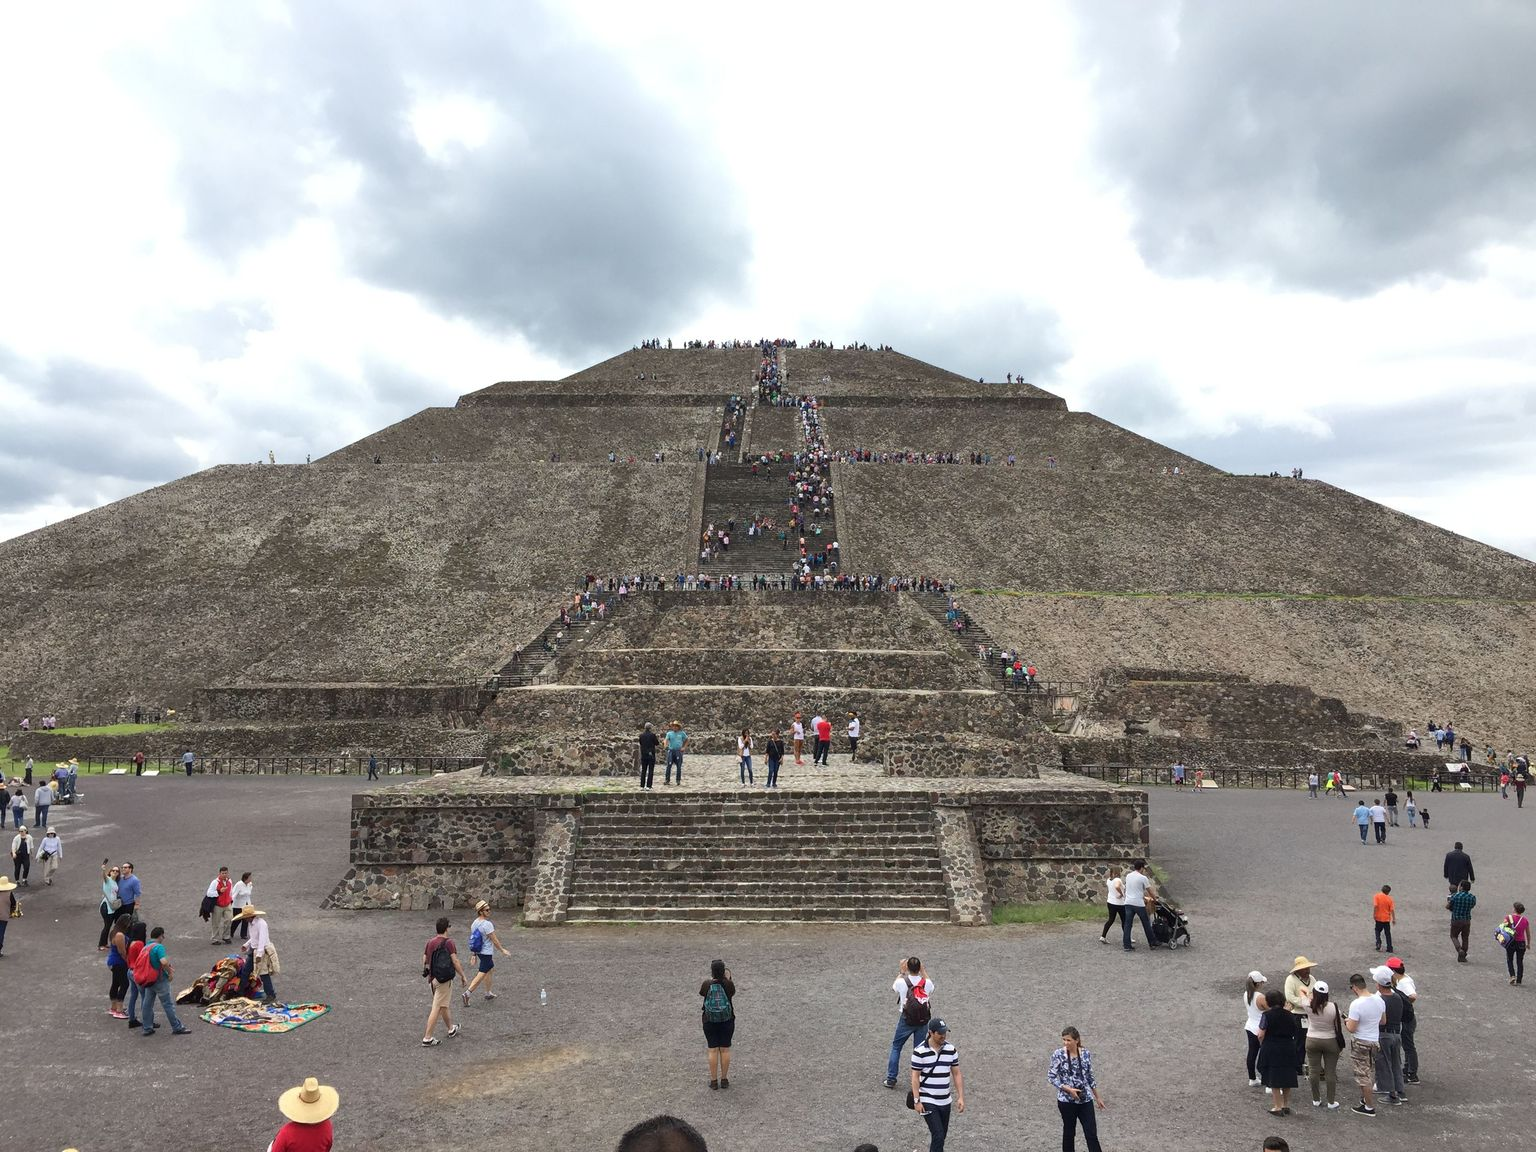 MORE PHOTOS, Teotihuacan Pyramids with Tequila Tasting Private Tour From Mexico City: